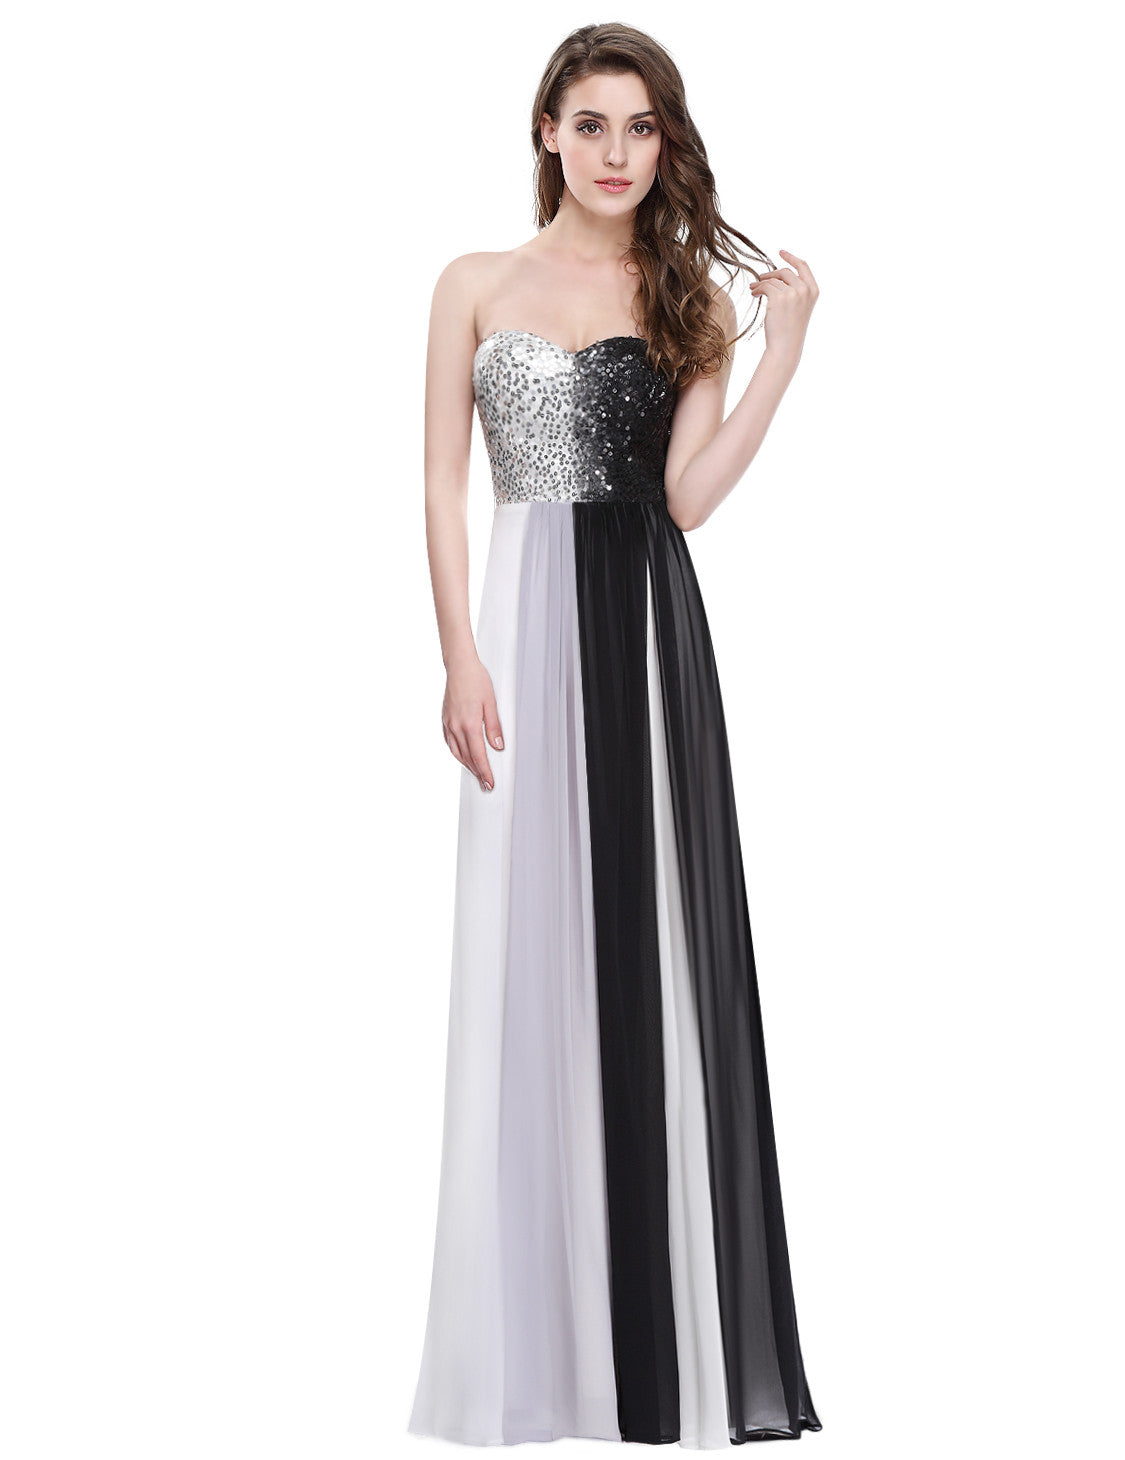 Strapless Sequined Bust Ombre Long Evening Dress - O'beige